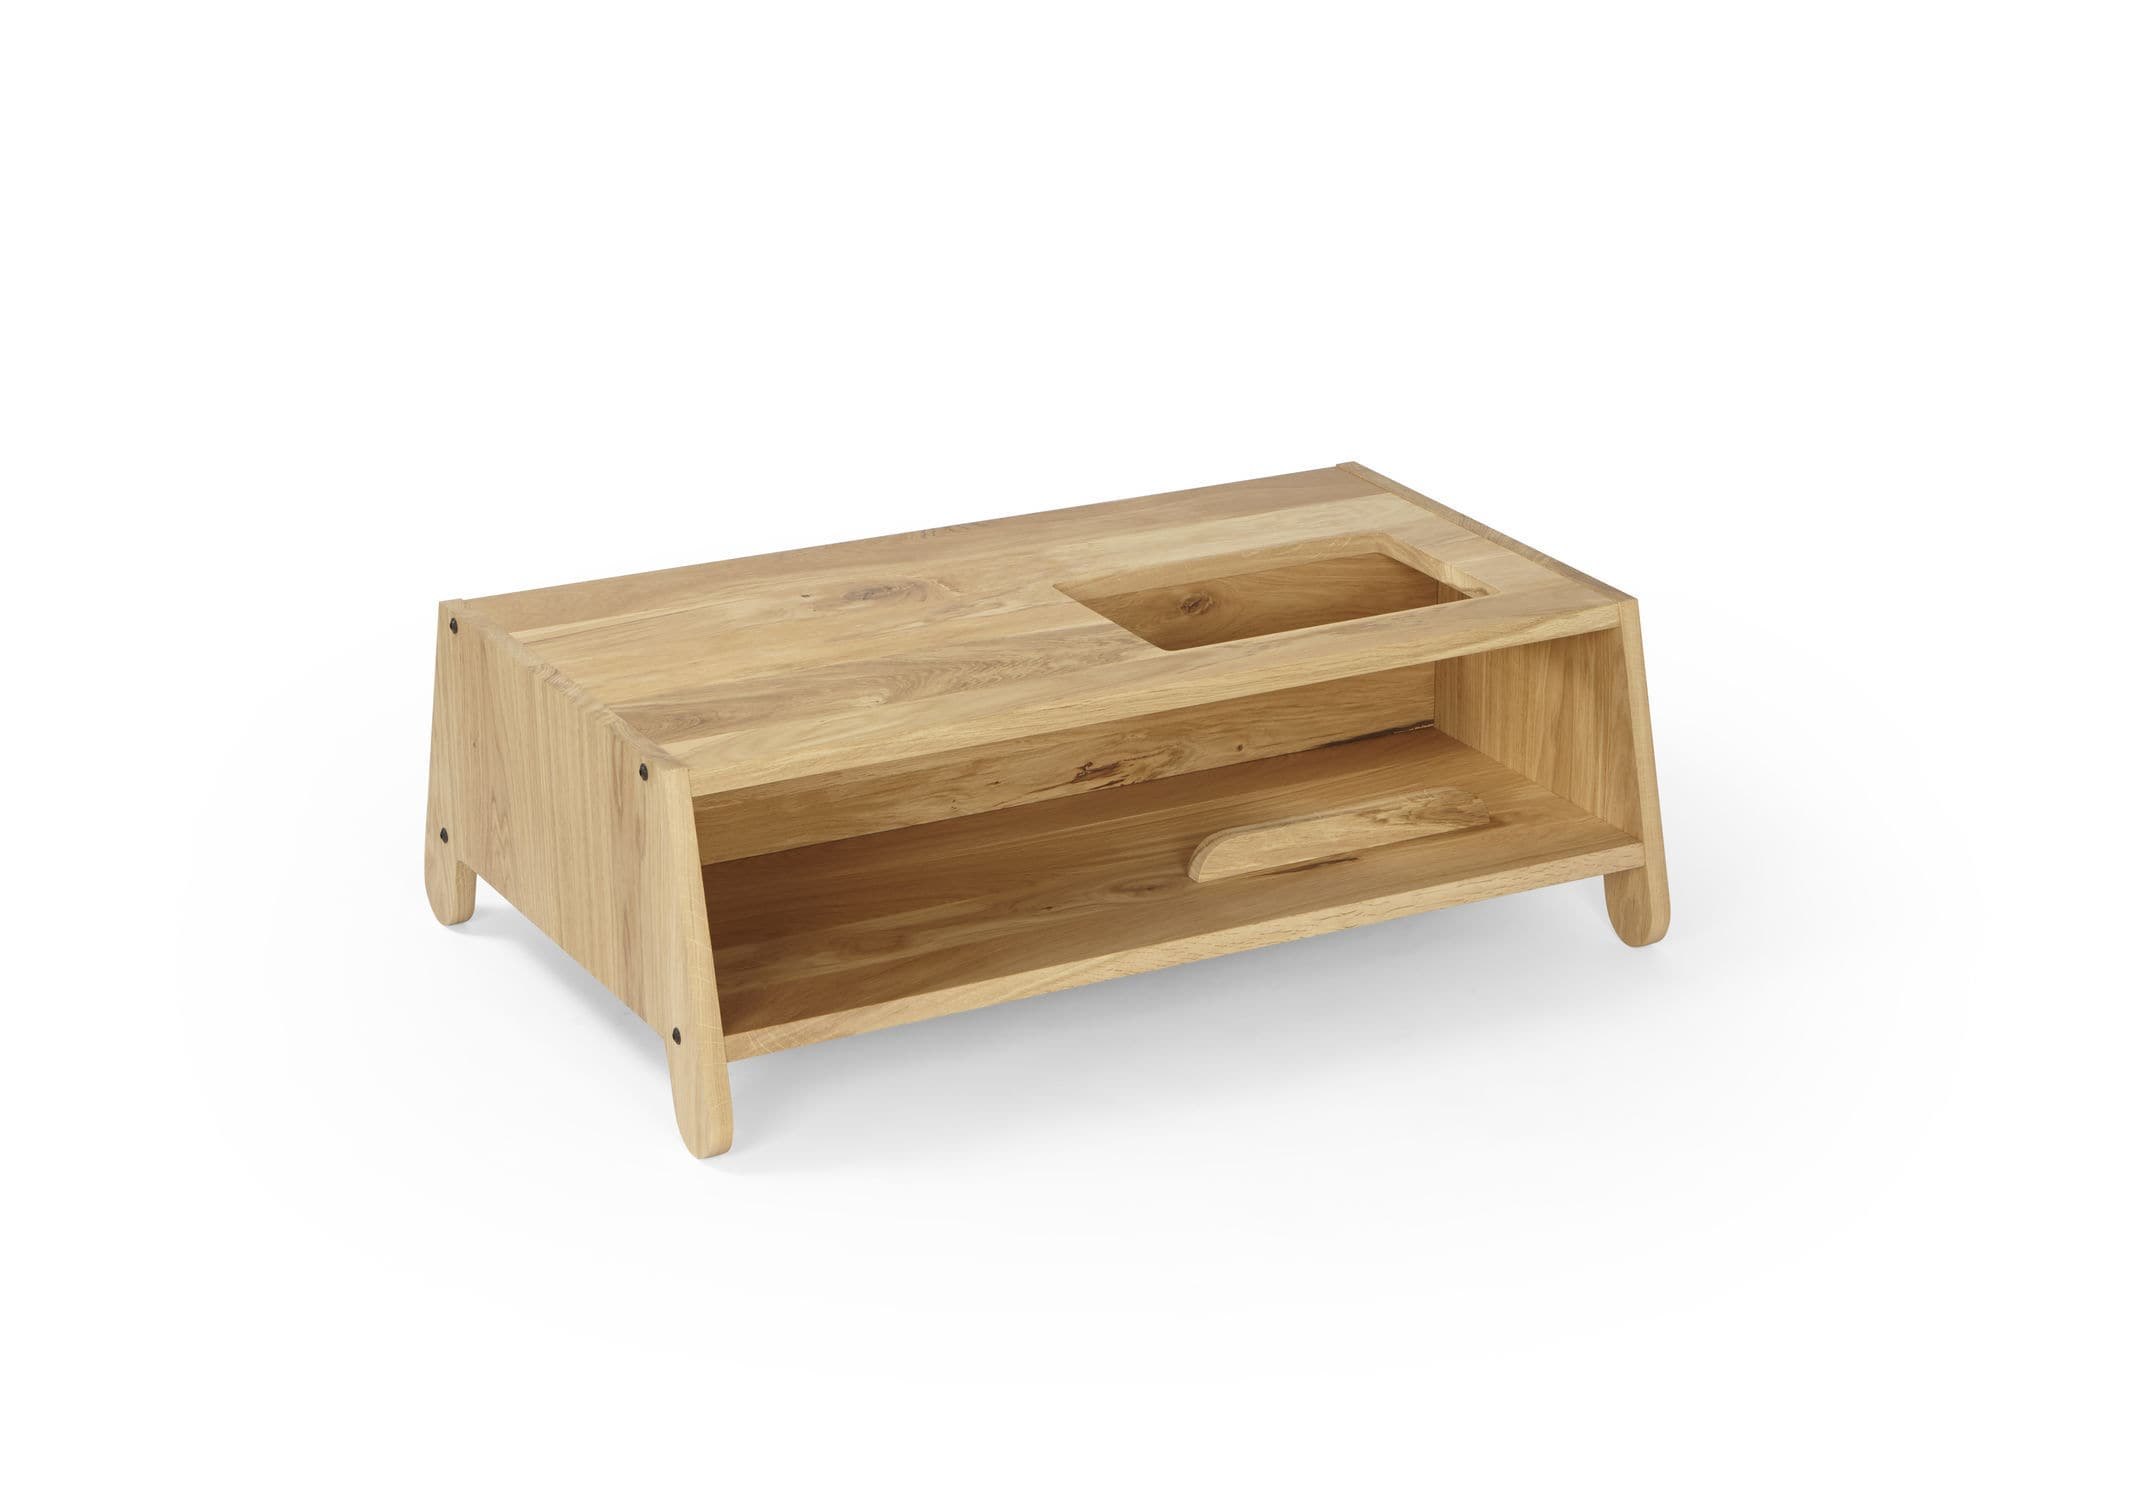 Contemporary coffee table oak solid wood beech dyname by contemporary coffee table oak solid wood beech dyname by philippe riehling junddo geotapseo Images